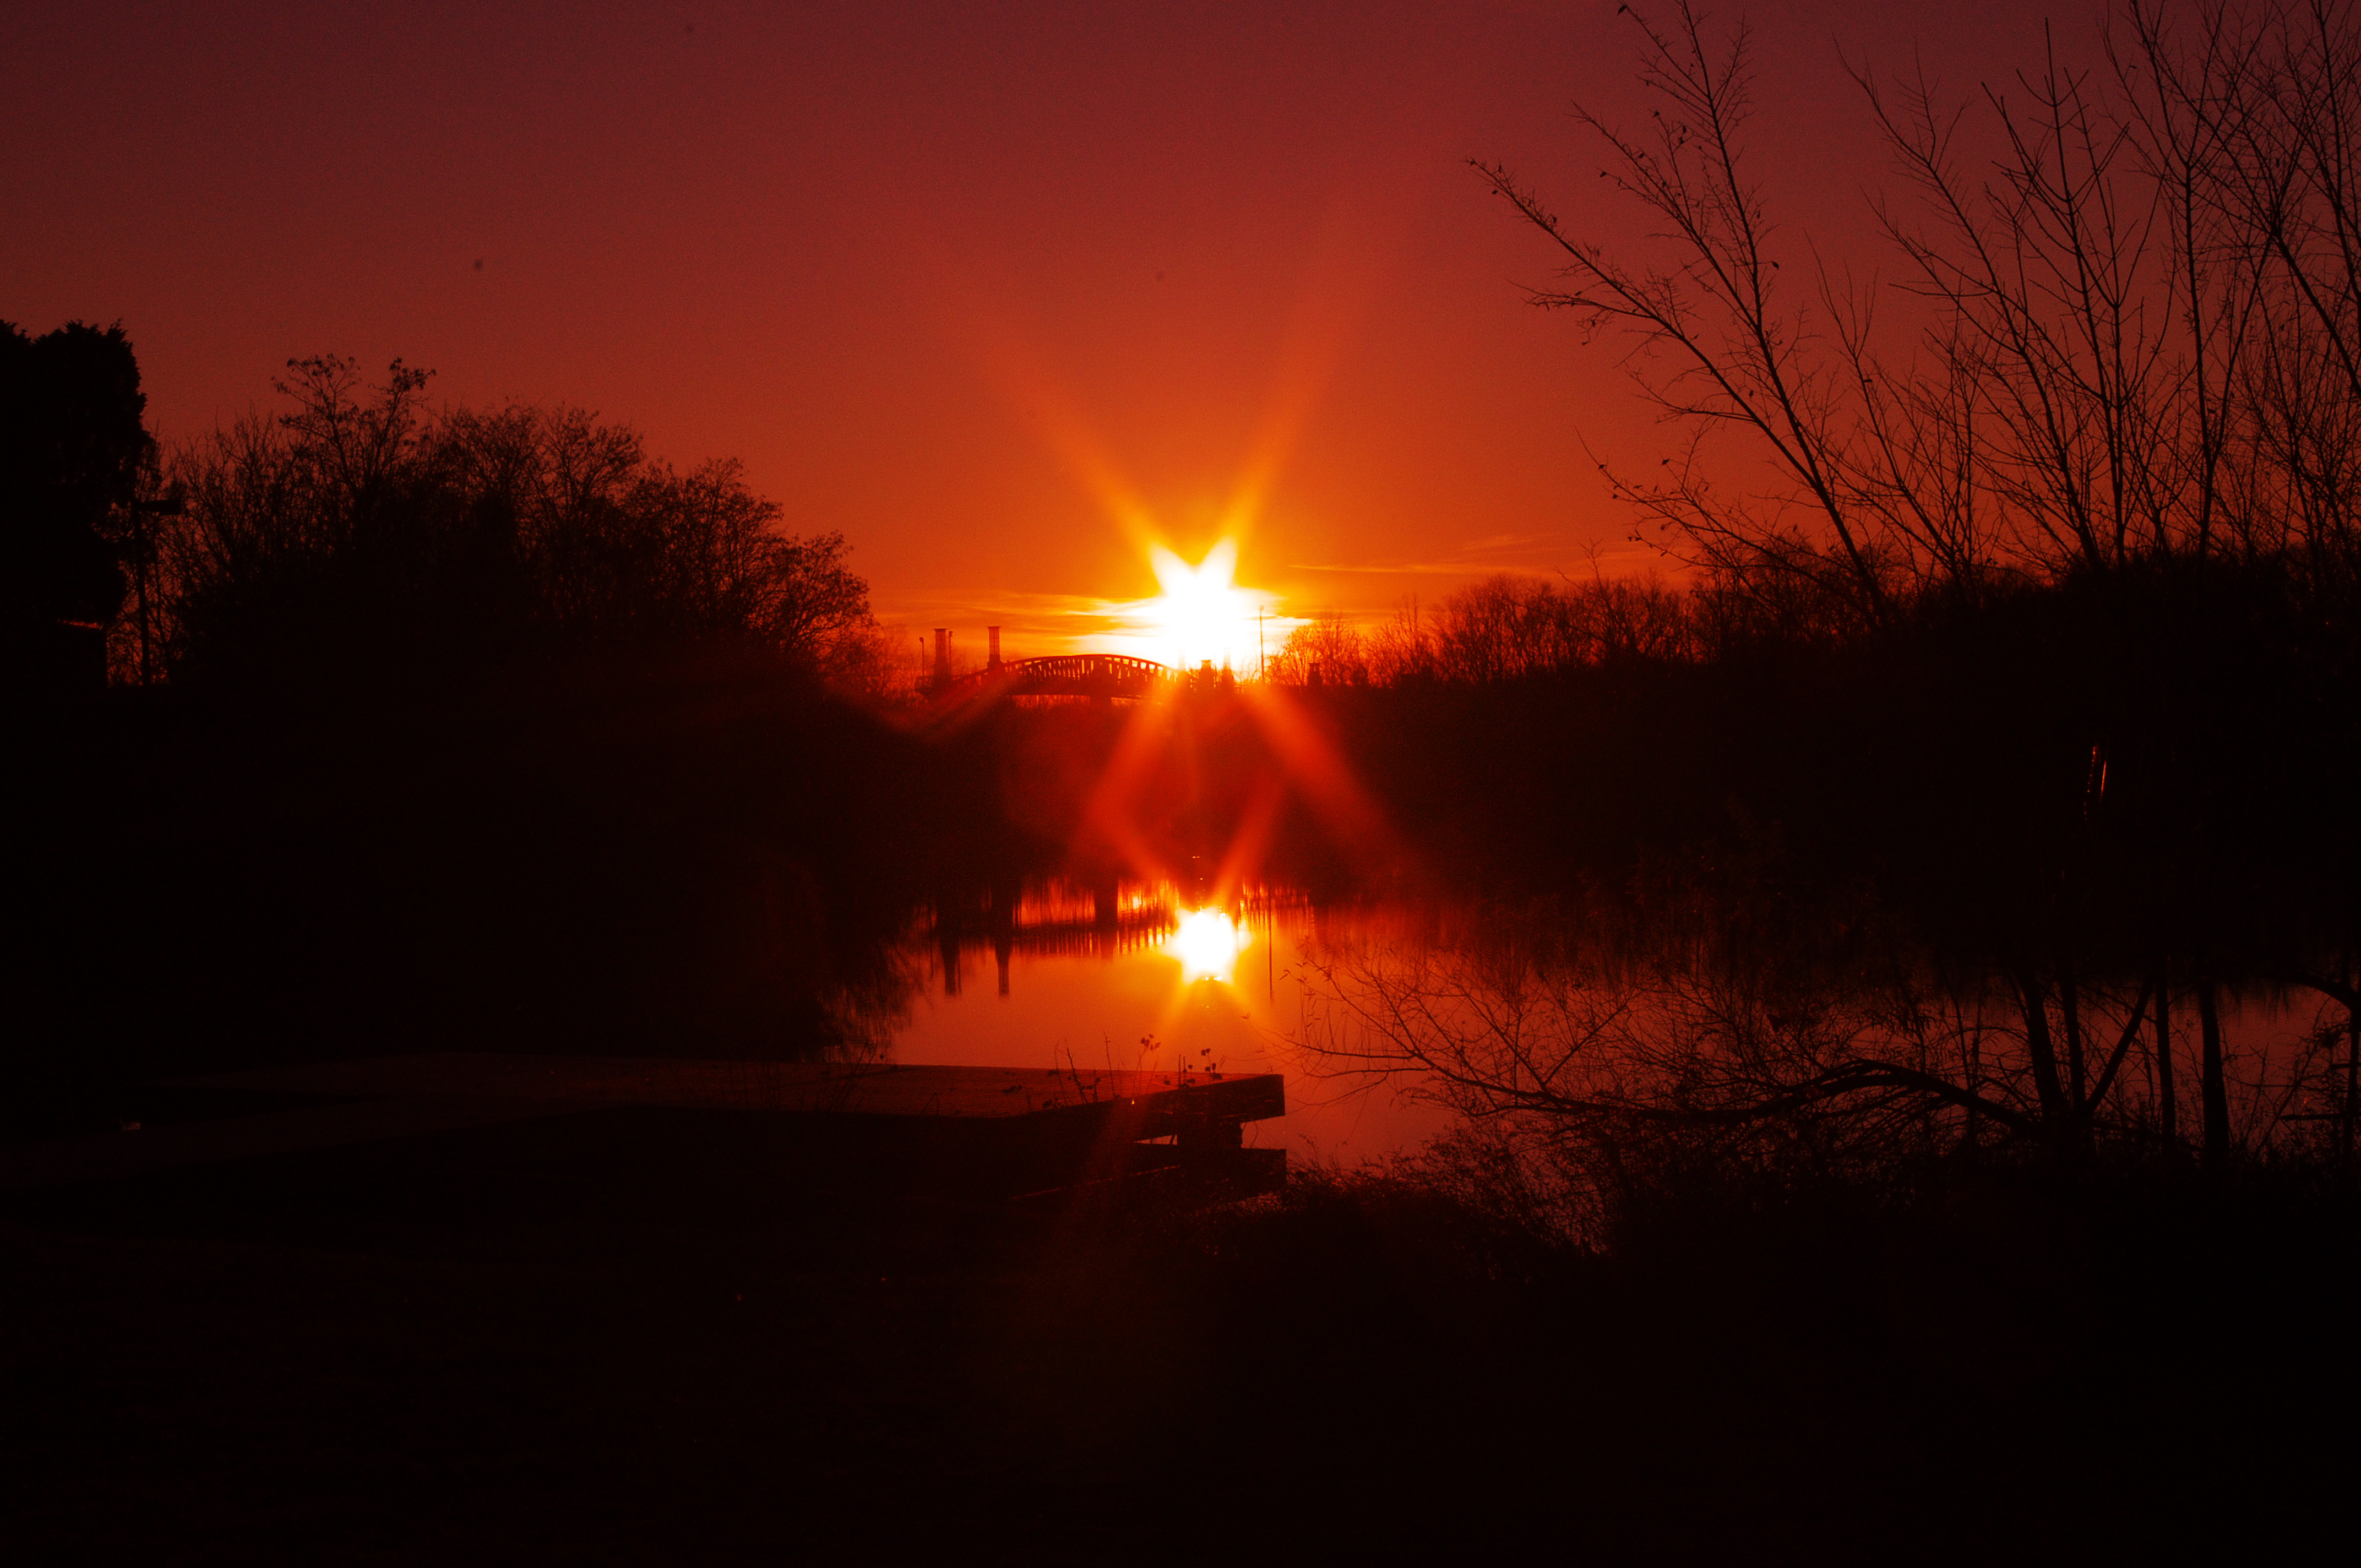 Alcoa (TN) United States  city pictures gallery : Maryville Alcoa Greenway sunset tn1 Wikimedia Commons